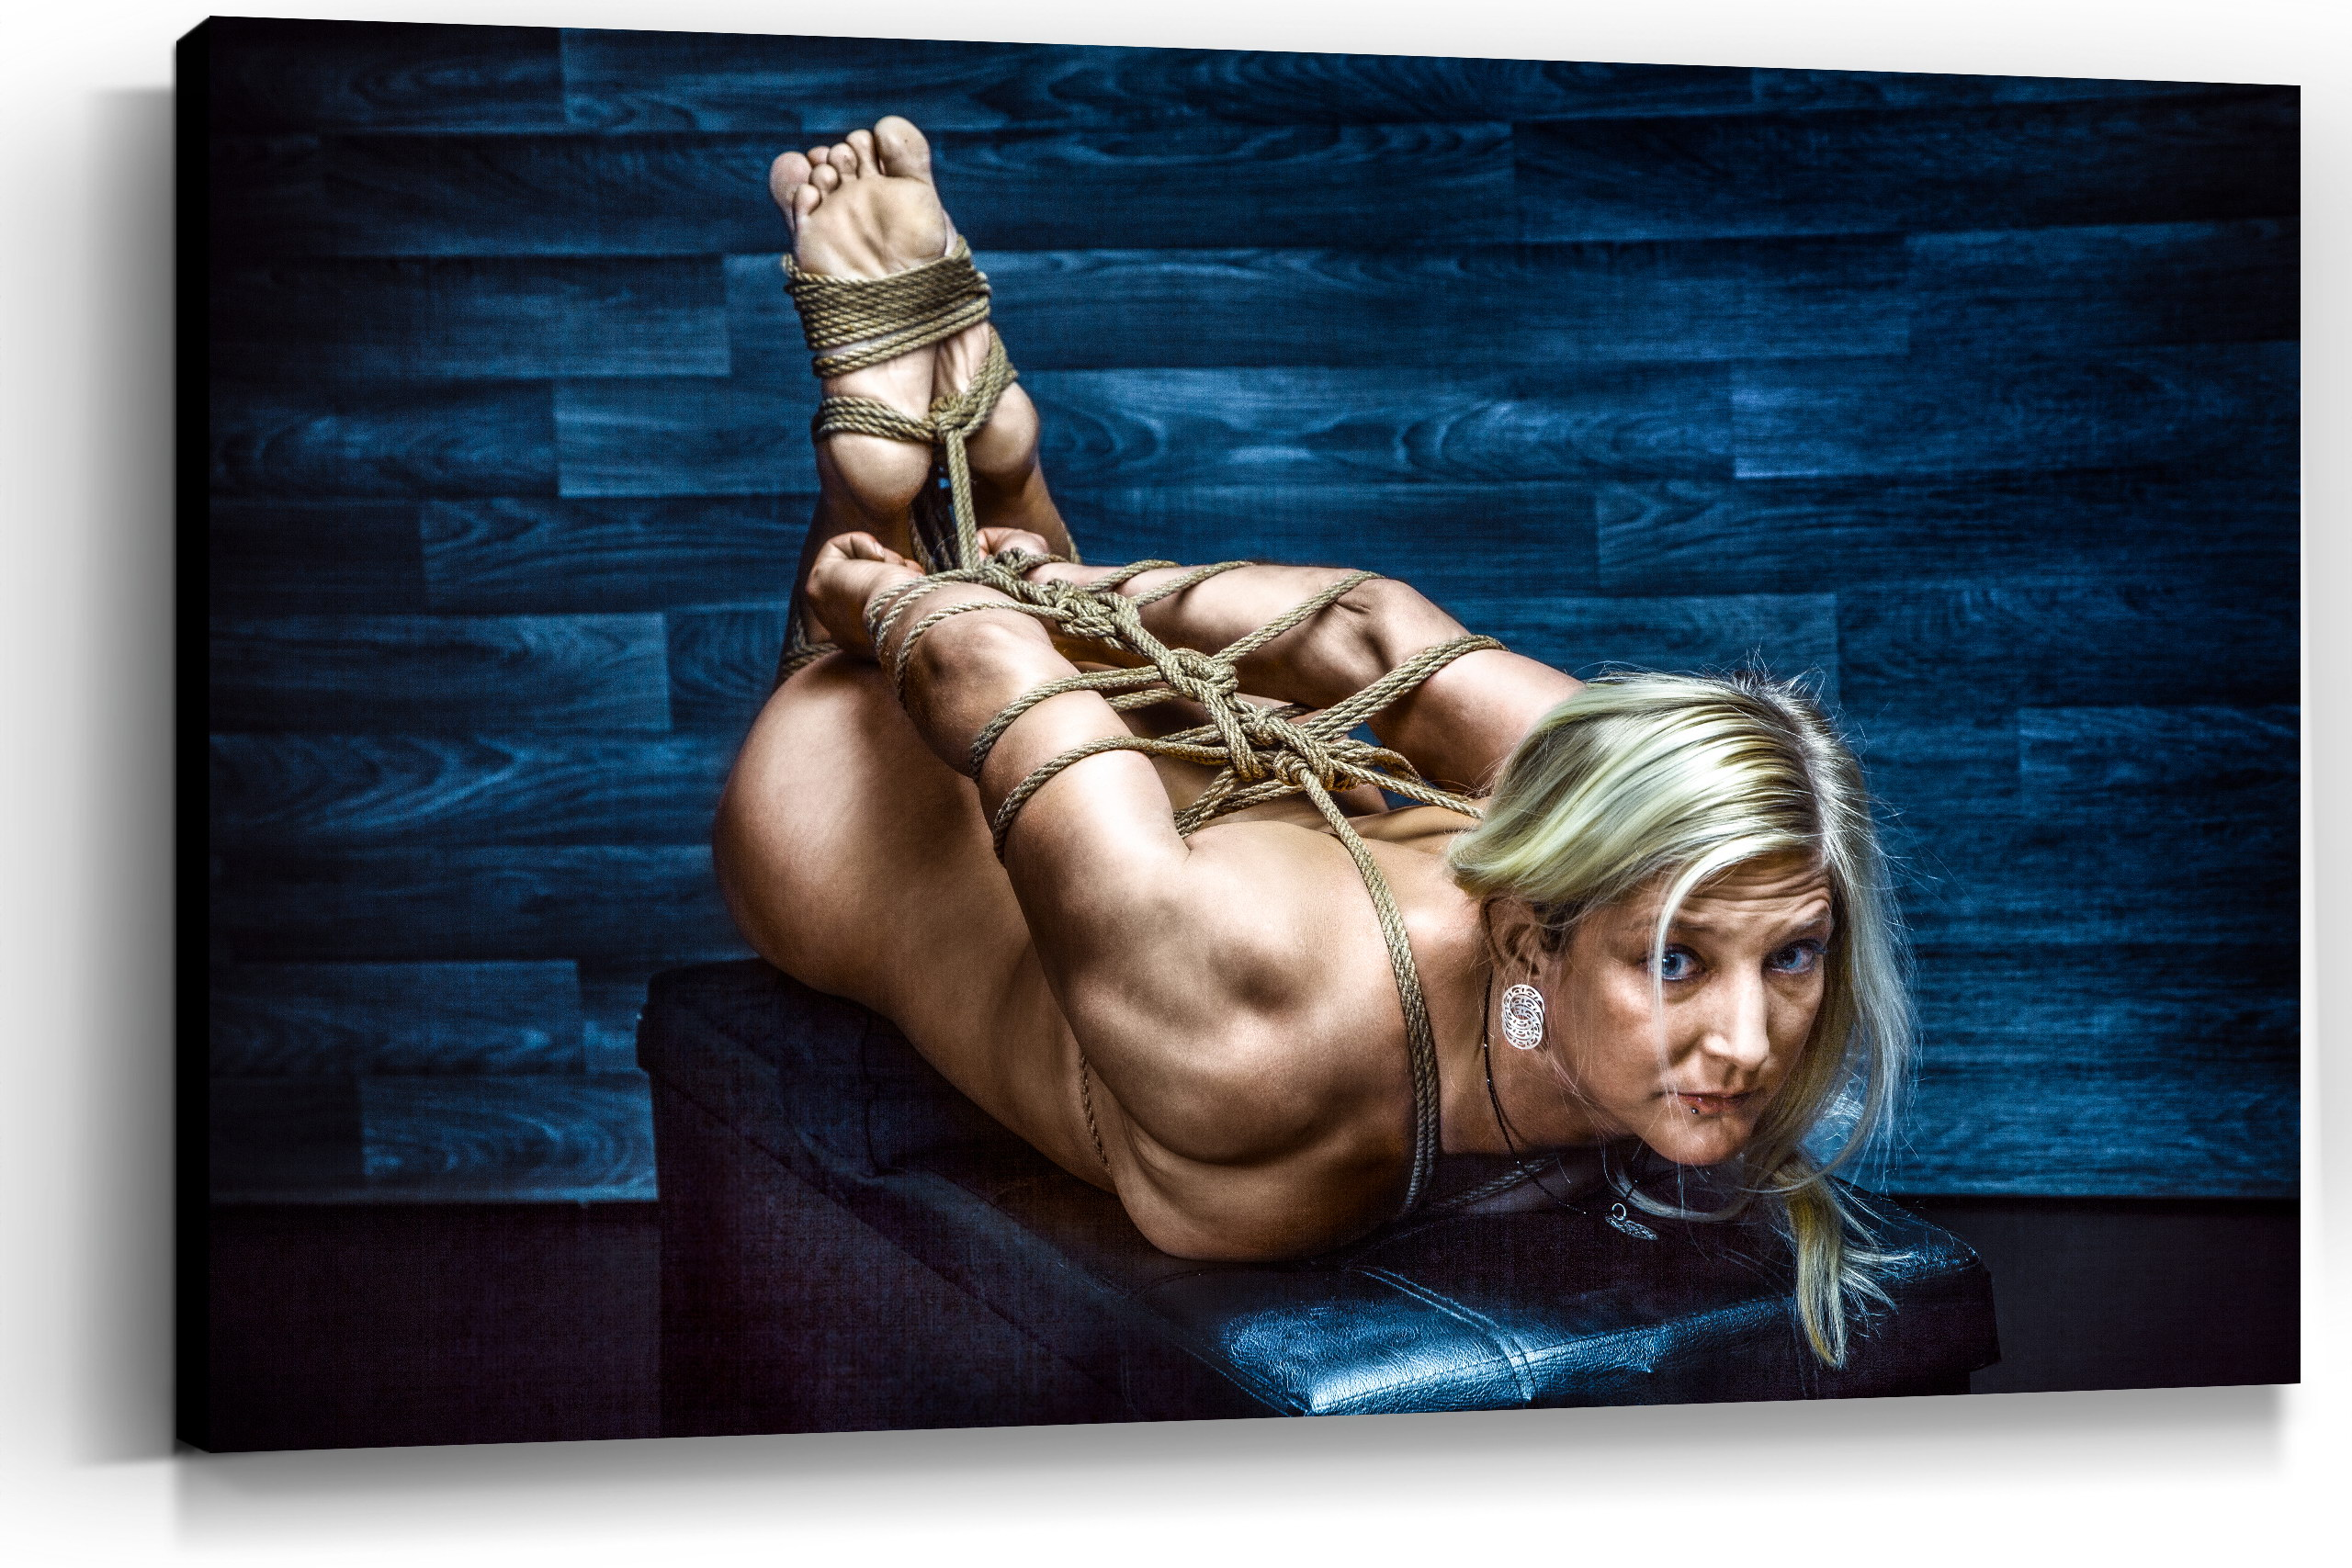 Nude tied up art 4